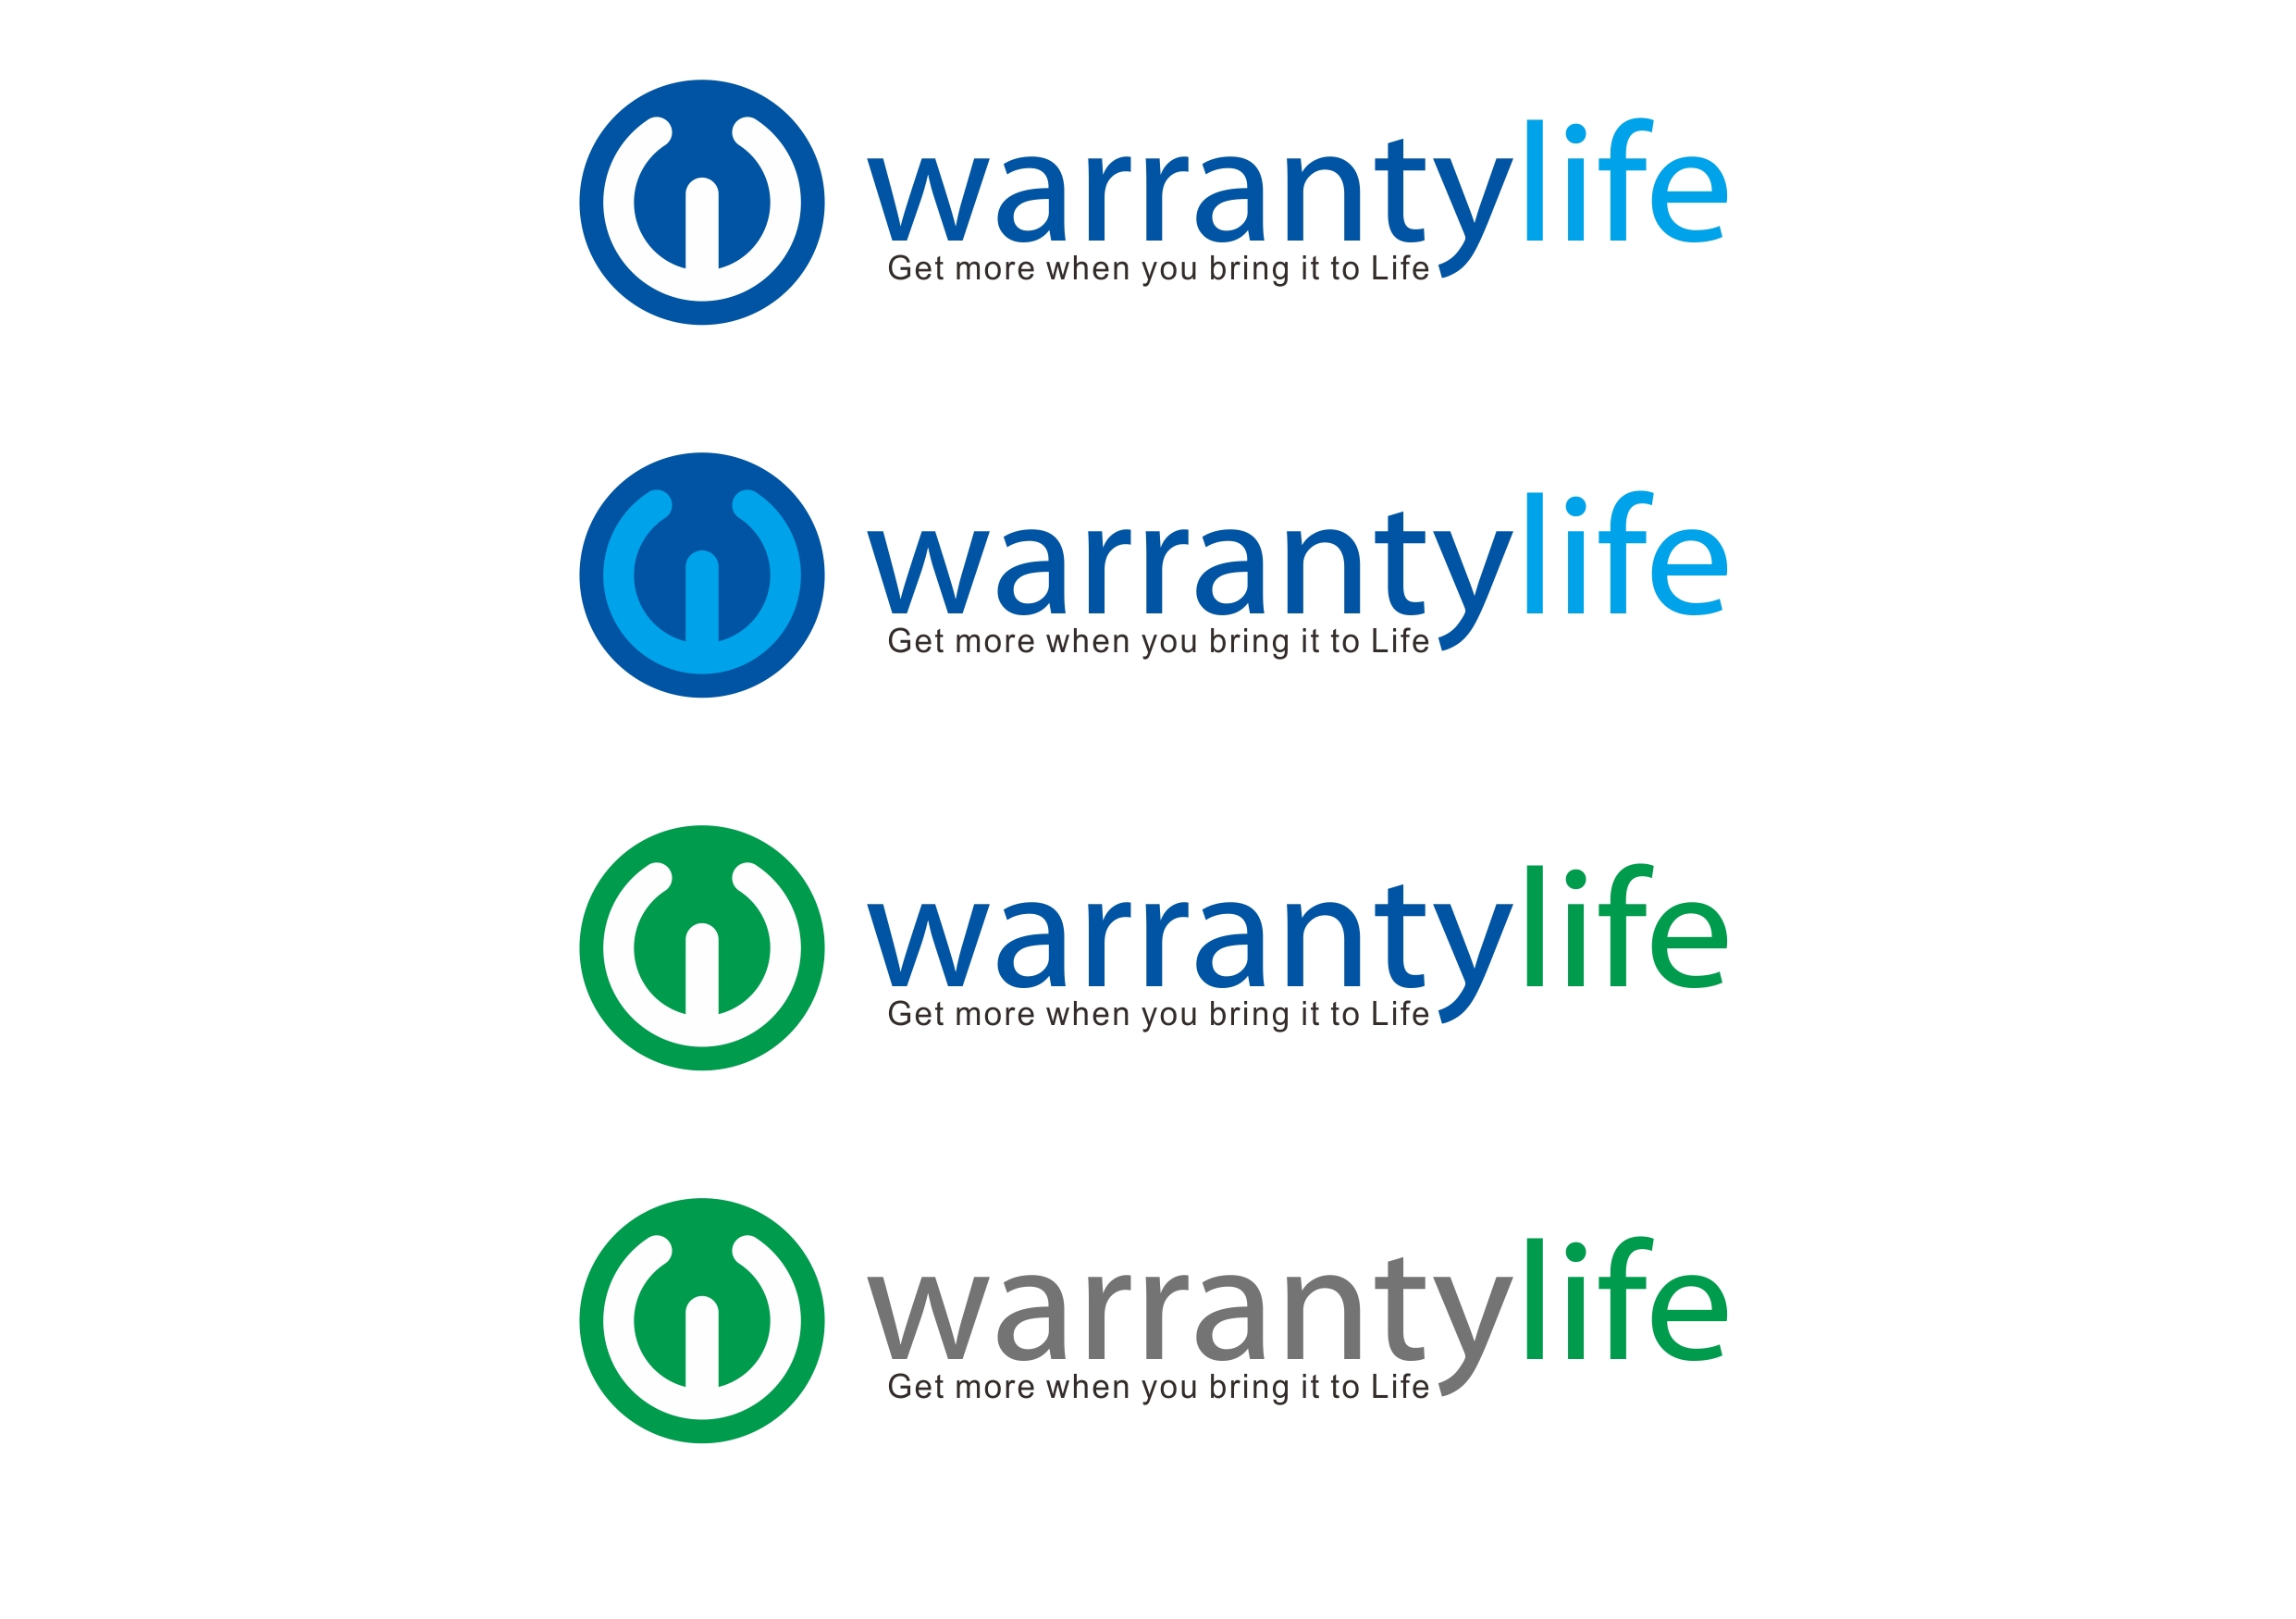 Logo Design by Teguh Mudjianto - Entry No. 68 in the Logo Design Contest WarrantyLife Logo Design.